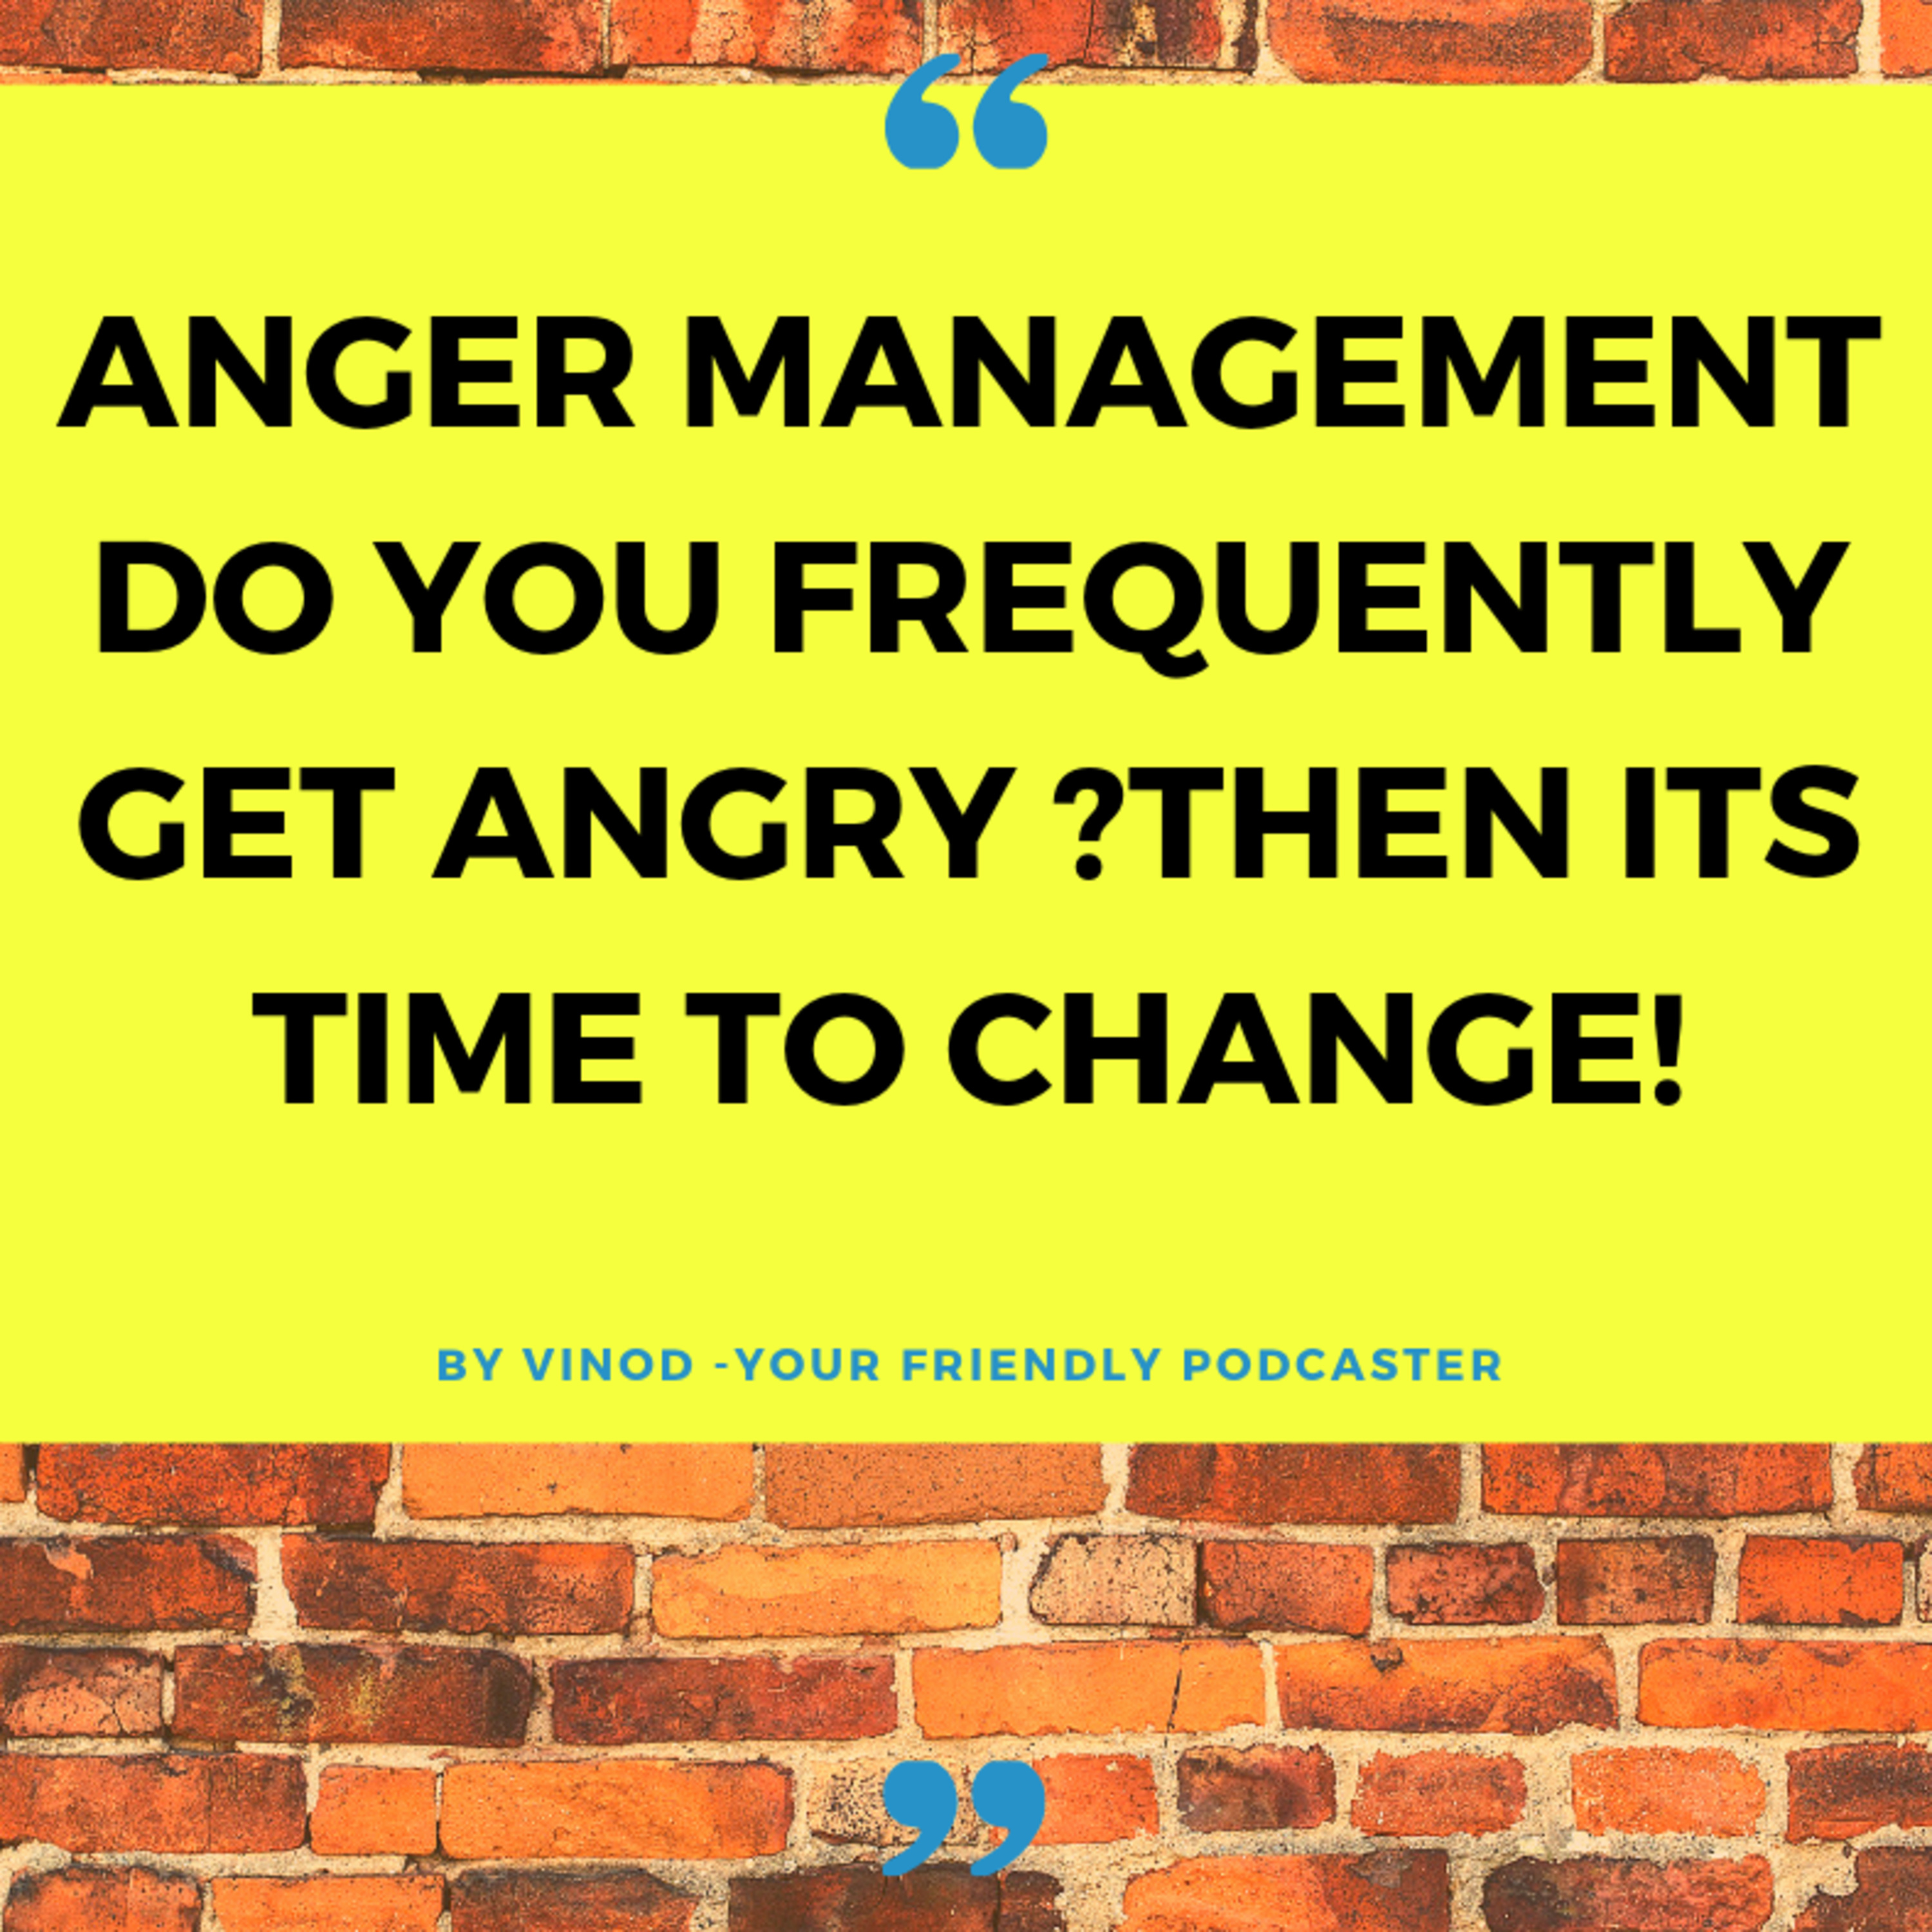 Anger Management-Your anger is a sign of weakness not great power